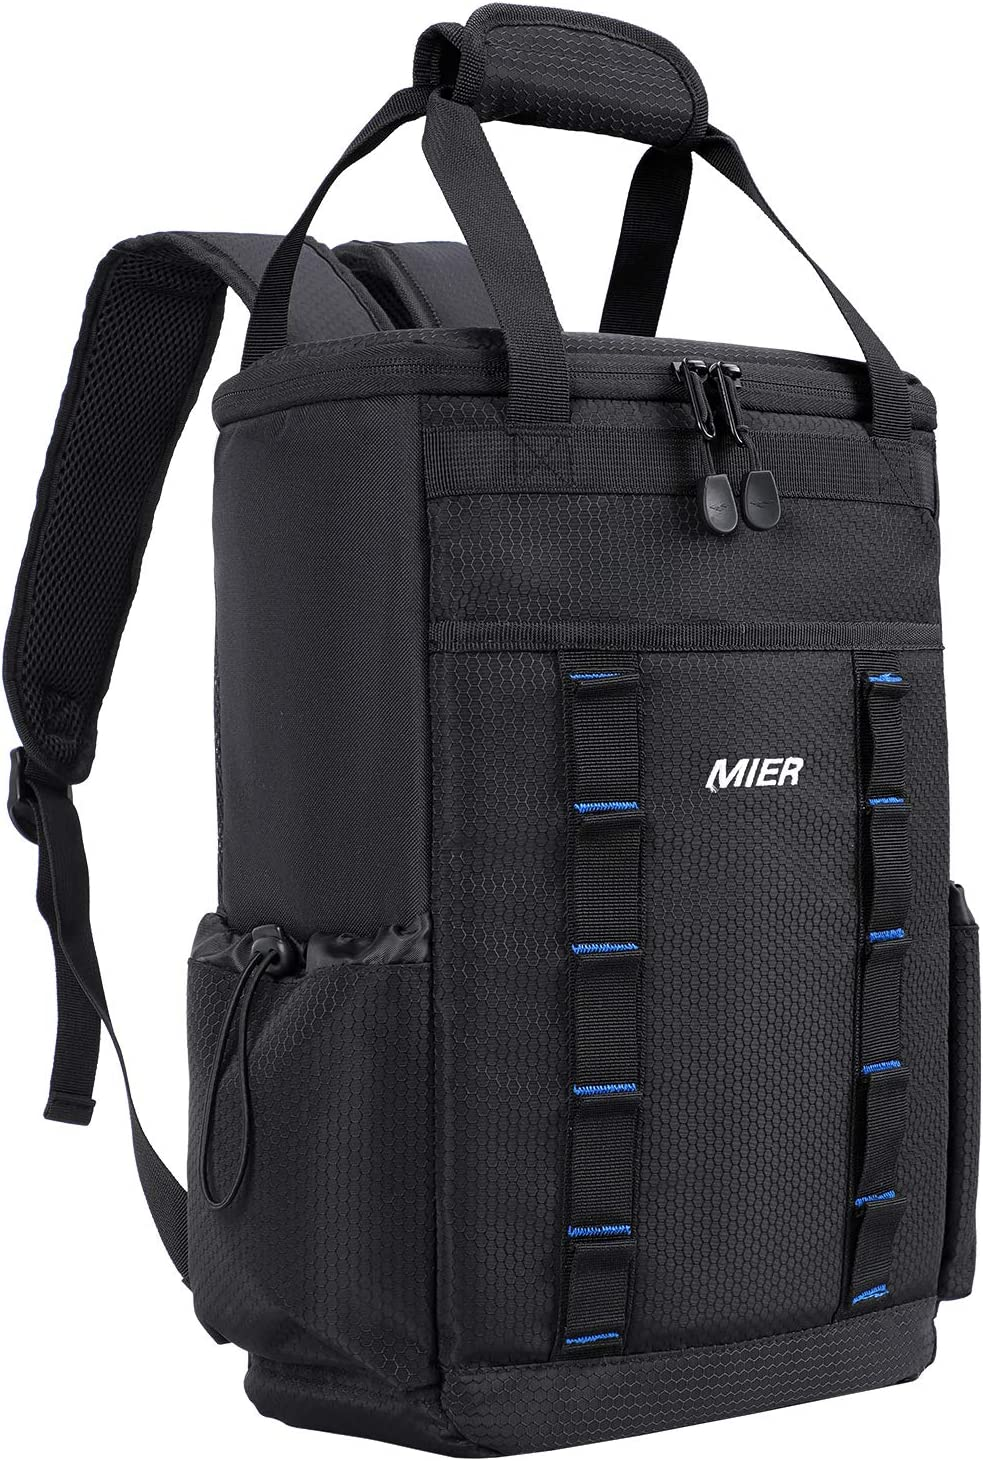 MIER Leakproof Insulated Backpack Soft Cooler Lunch Bag for Men and Women to Picnic, Work, Travel, Beach, Sports, Camping, Hiking, 20 Can, Black